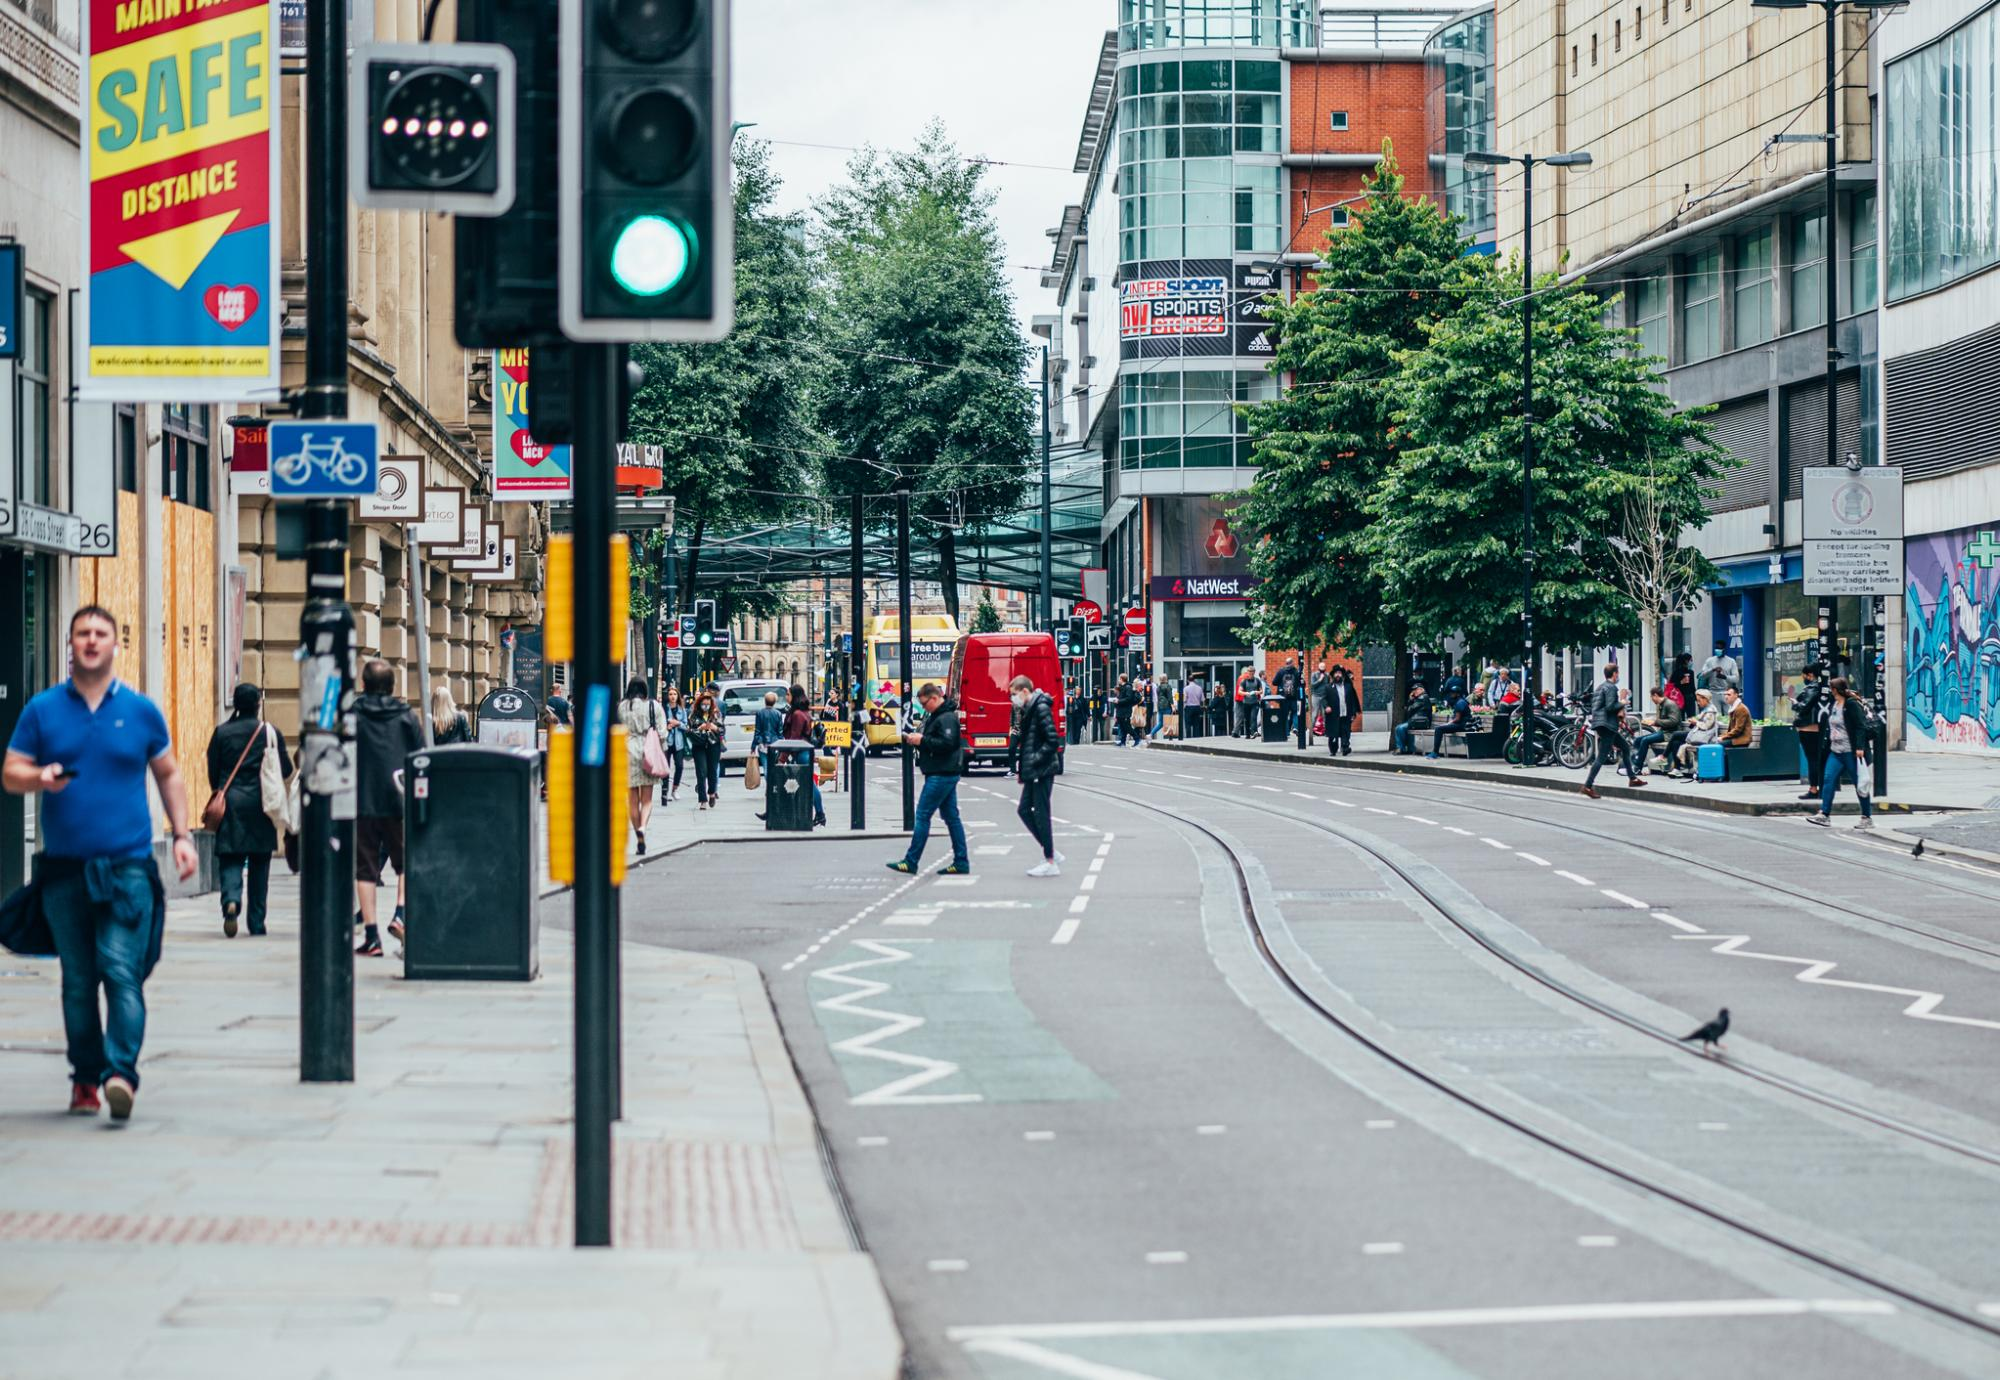 Busy Manchester street with pedestrians on the pavement.